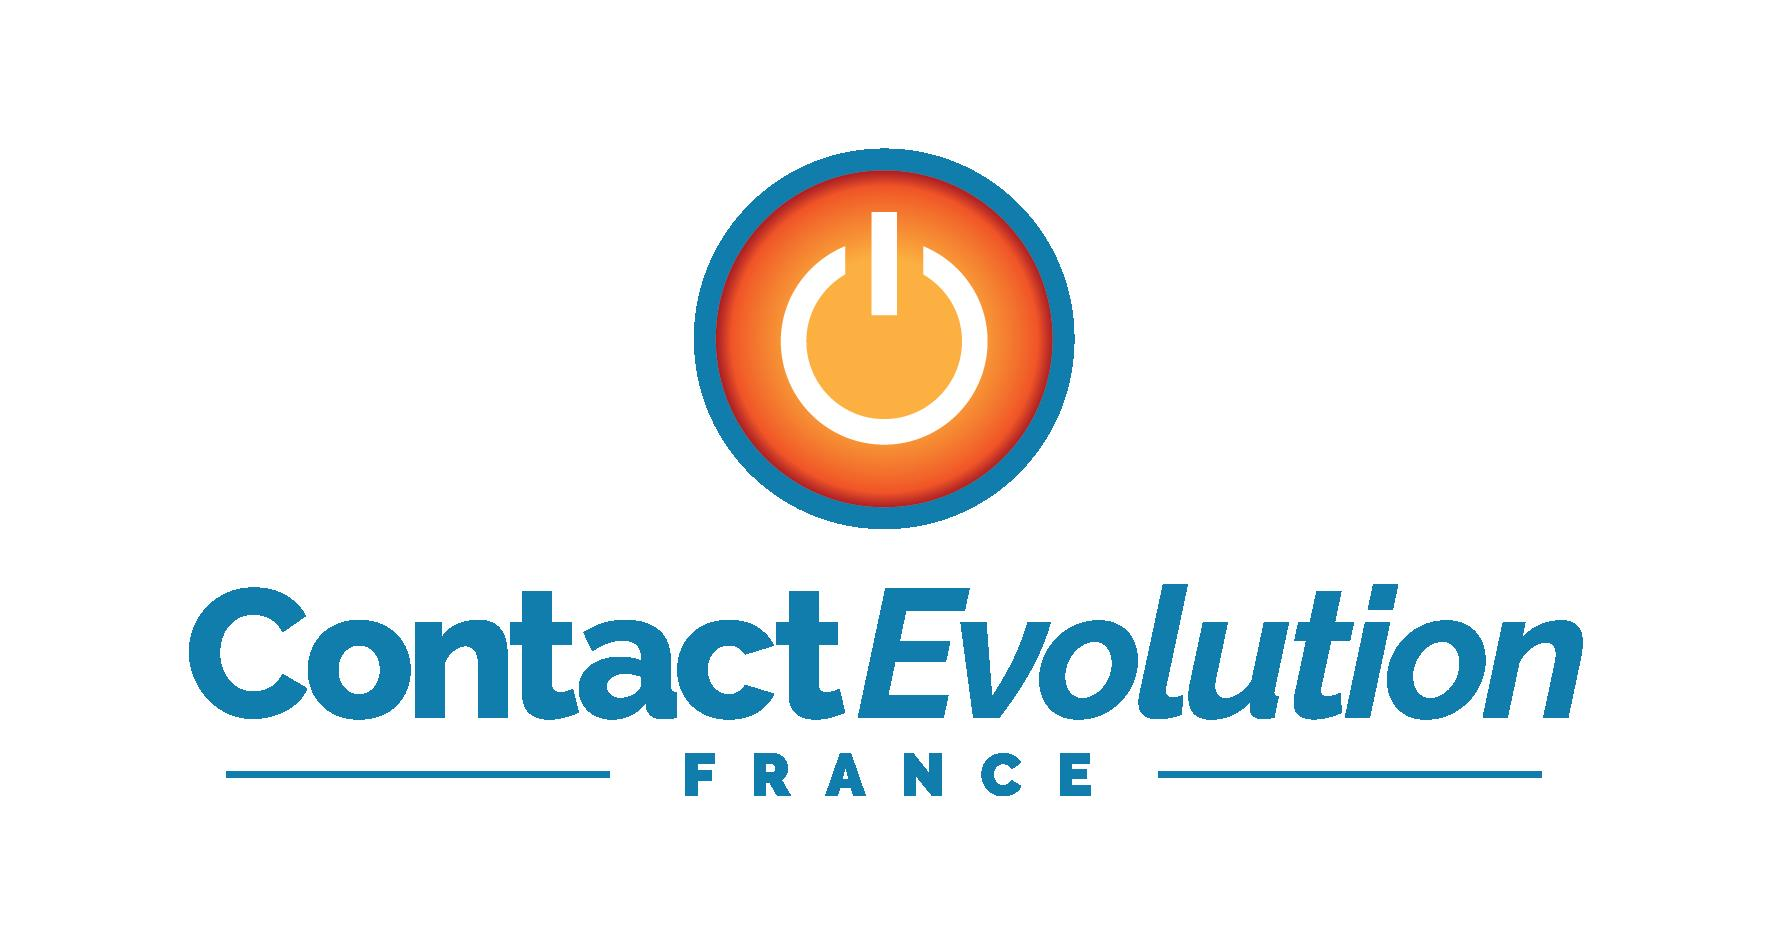 CONTACT EVOLUTION FRANCE